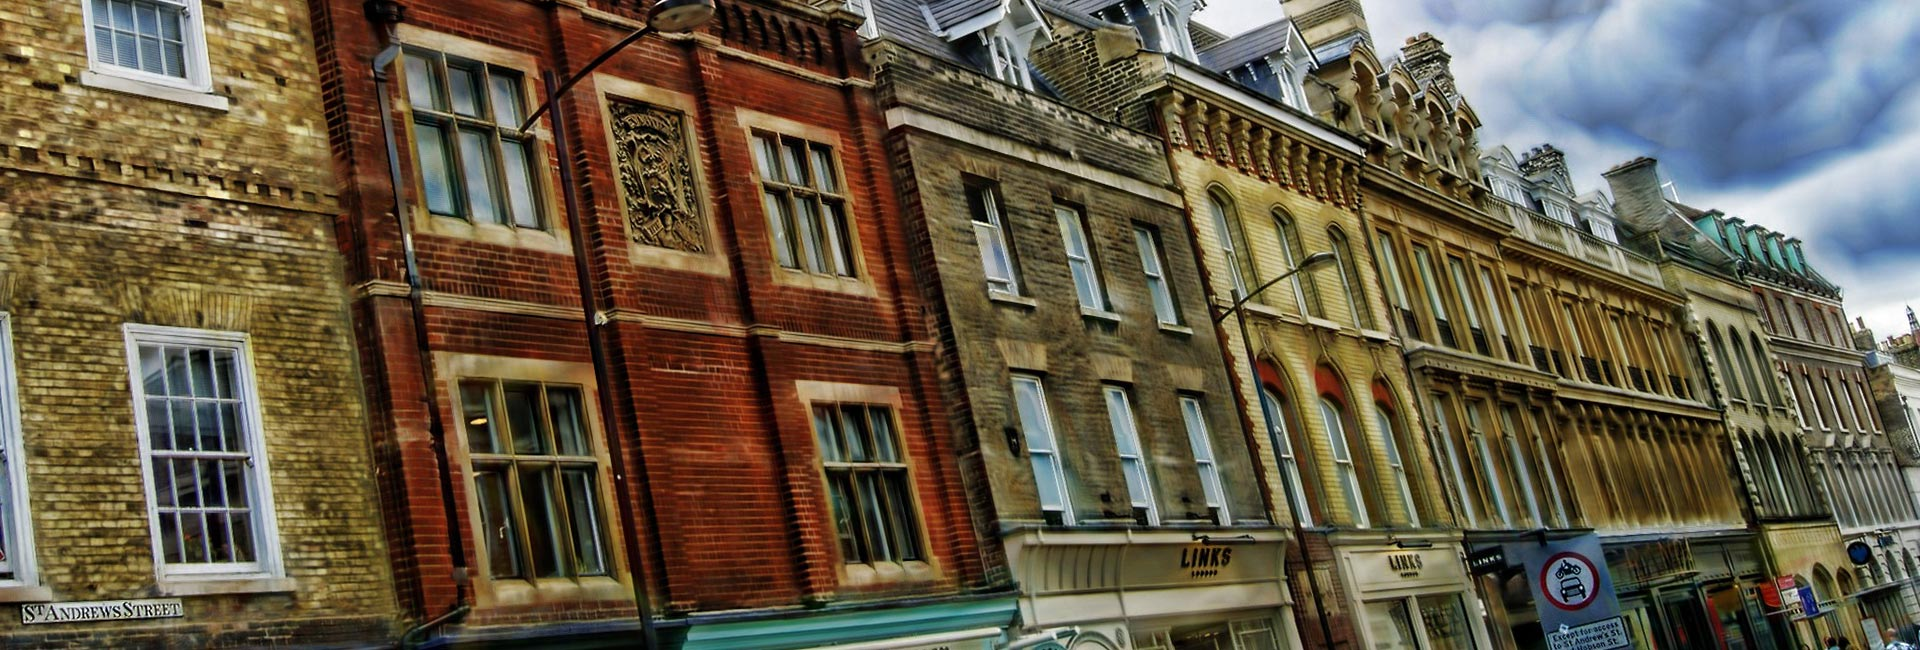 Row of apartments - Review of the UK property market